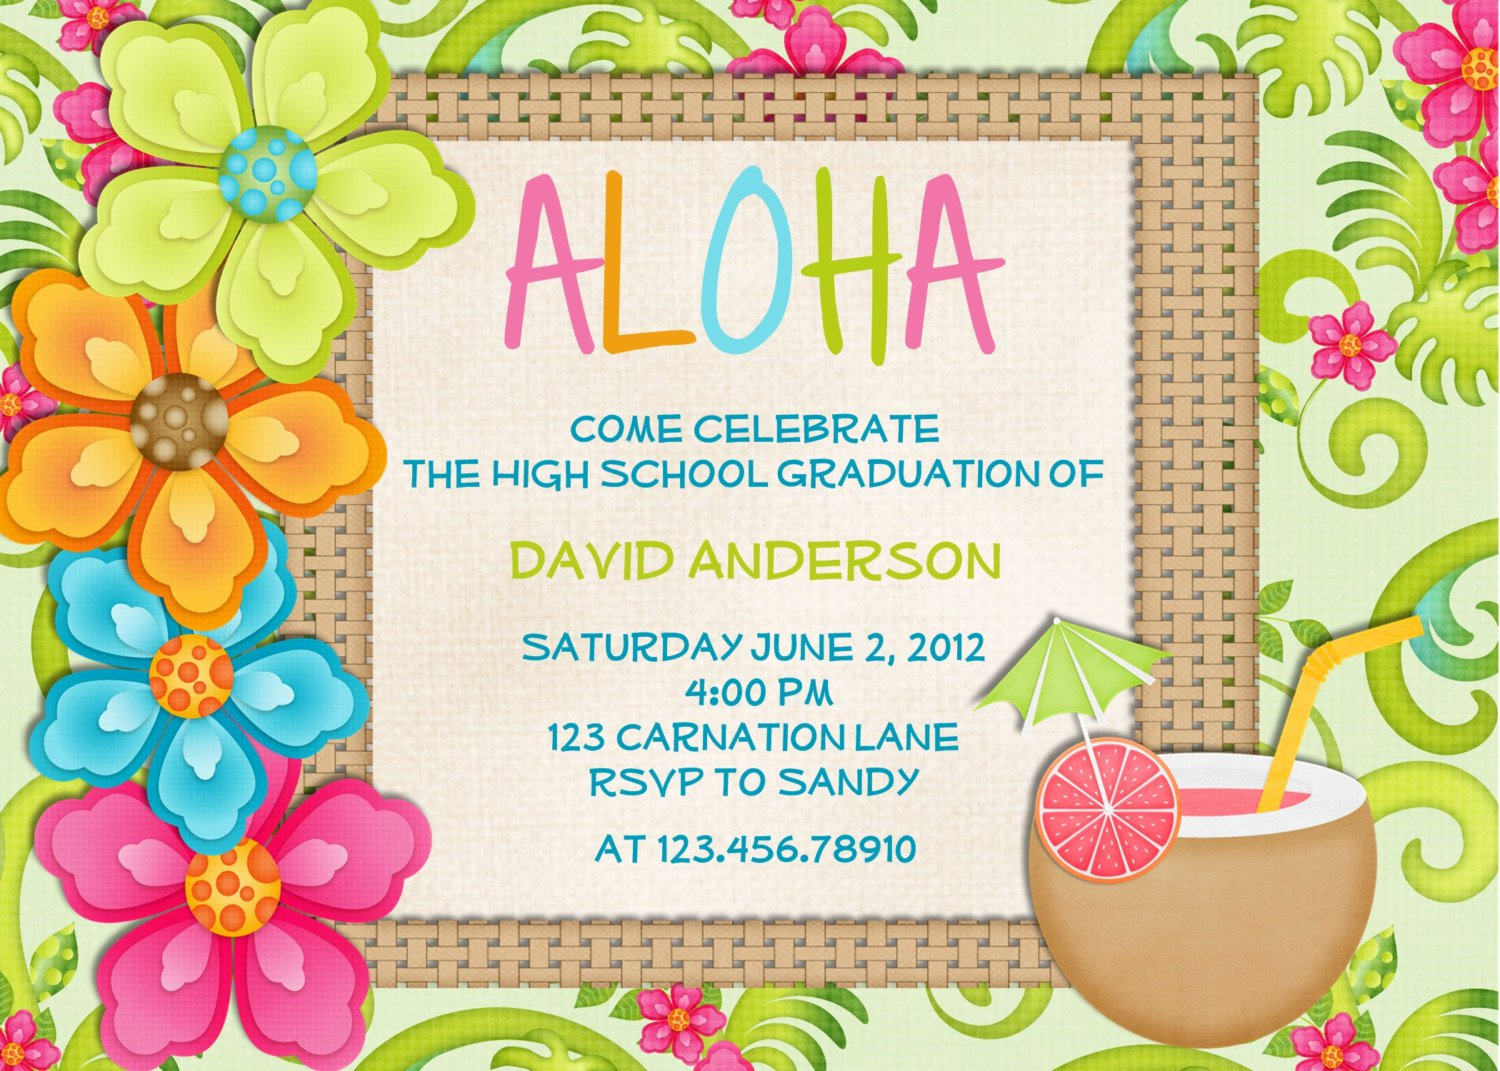 luau_birthday_invitation_wording_ideas.jpg